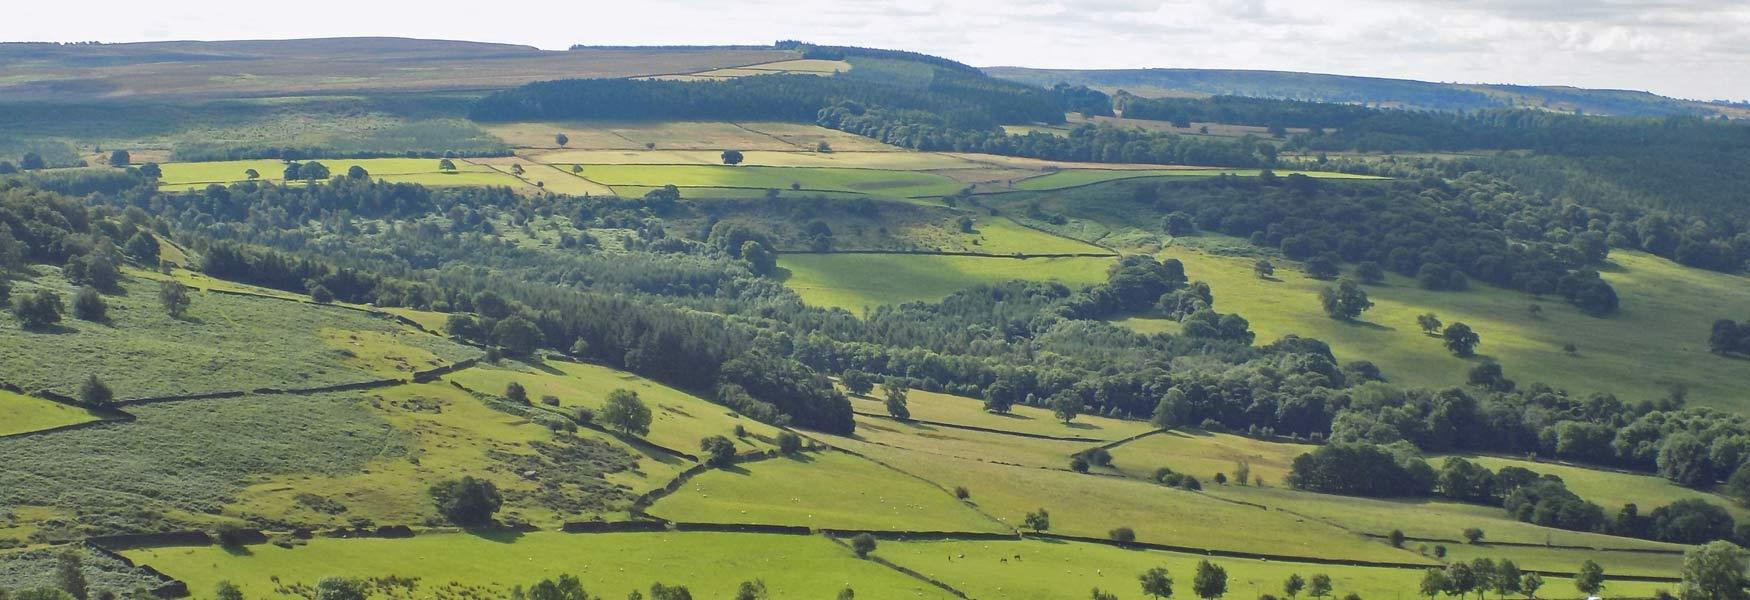 Explore the Peak District Landscape this Summer